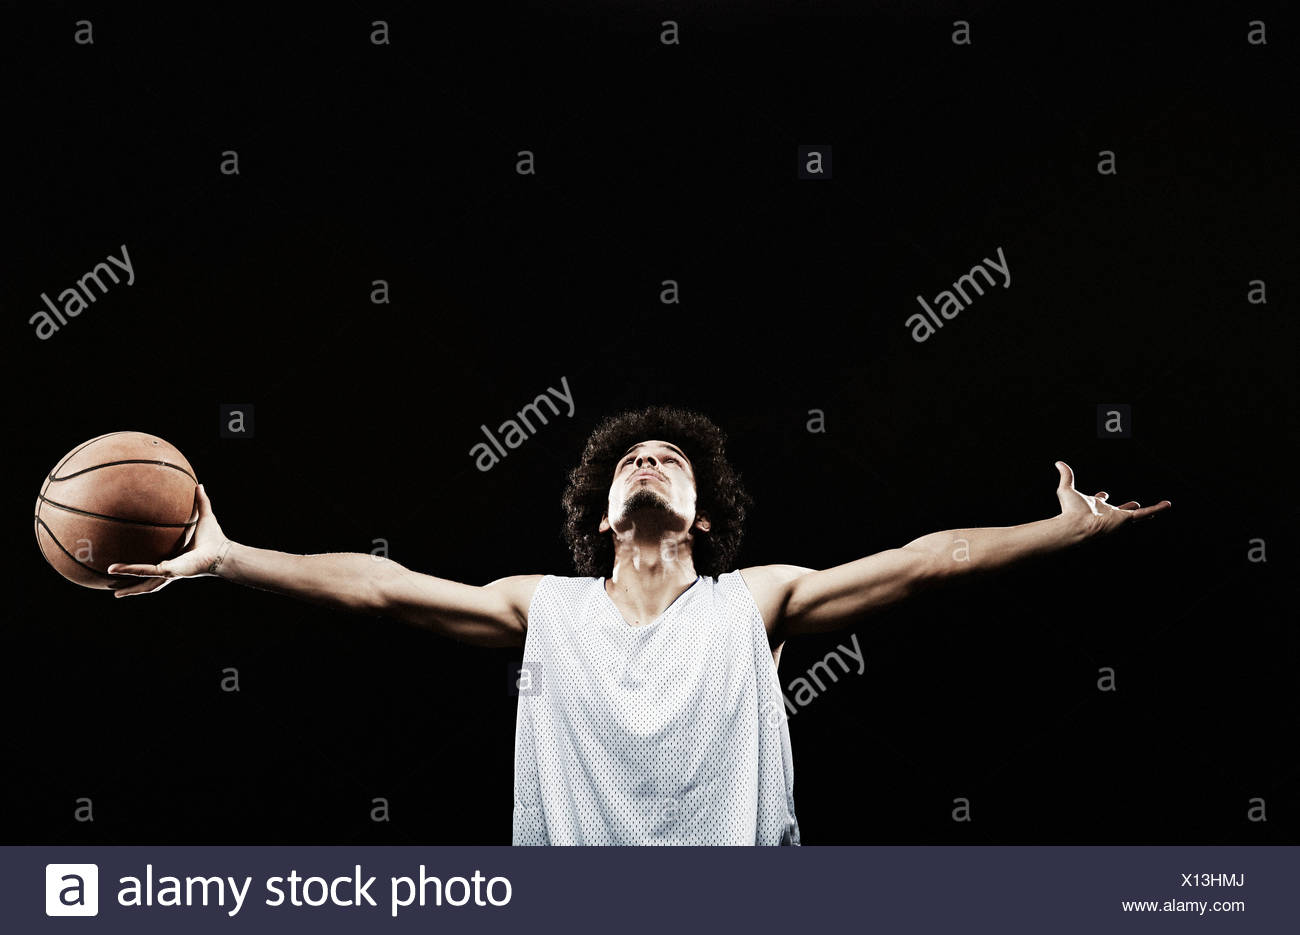 Basketball player holding basketball with arms out - Stock Image